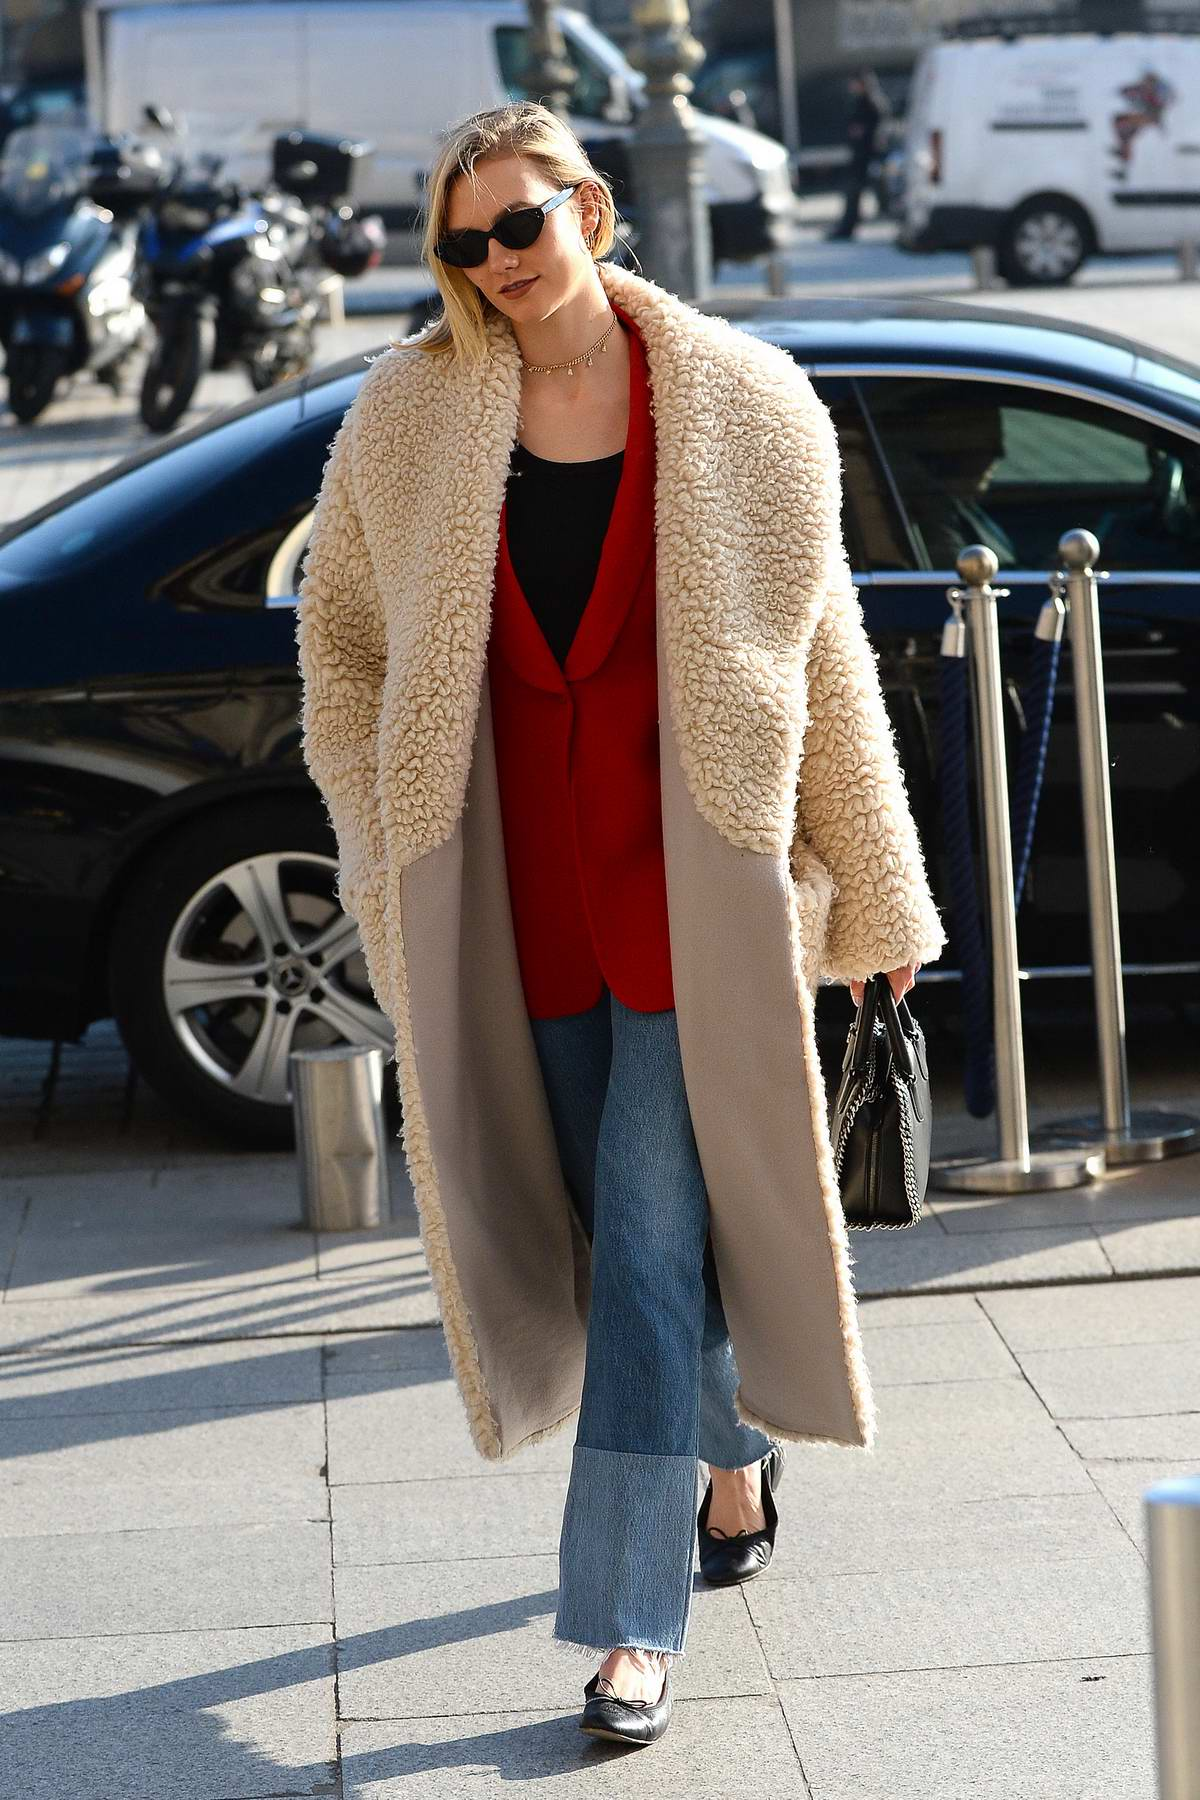 Karlie Kloss arrives all wrapped up in a sheepskin coat at the Ritz hotel in Paris, France